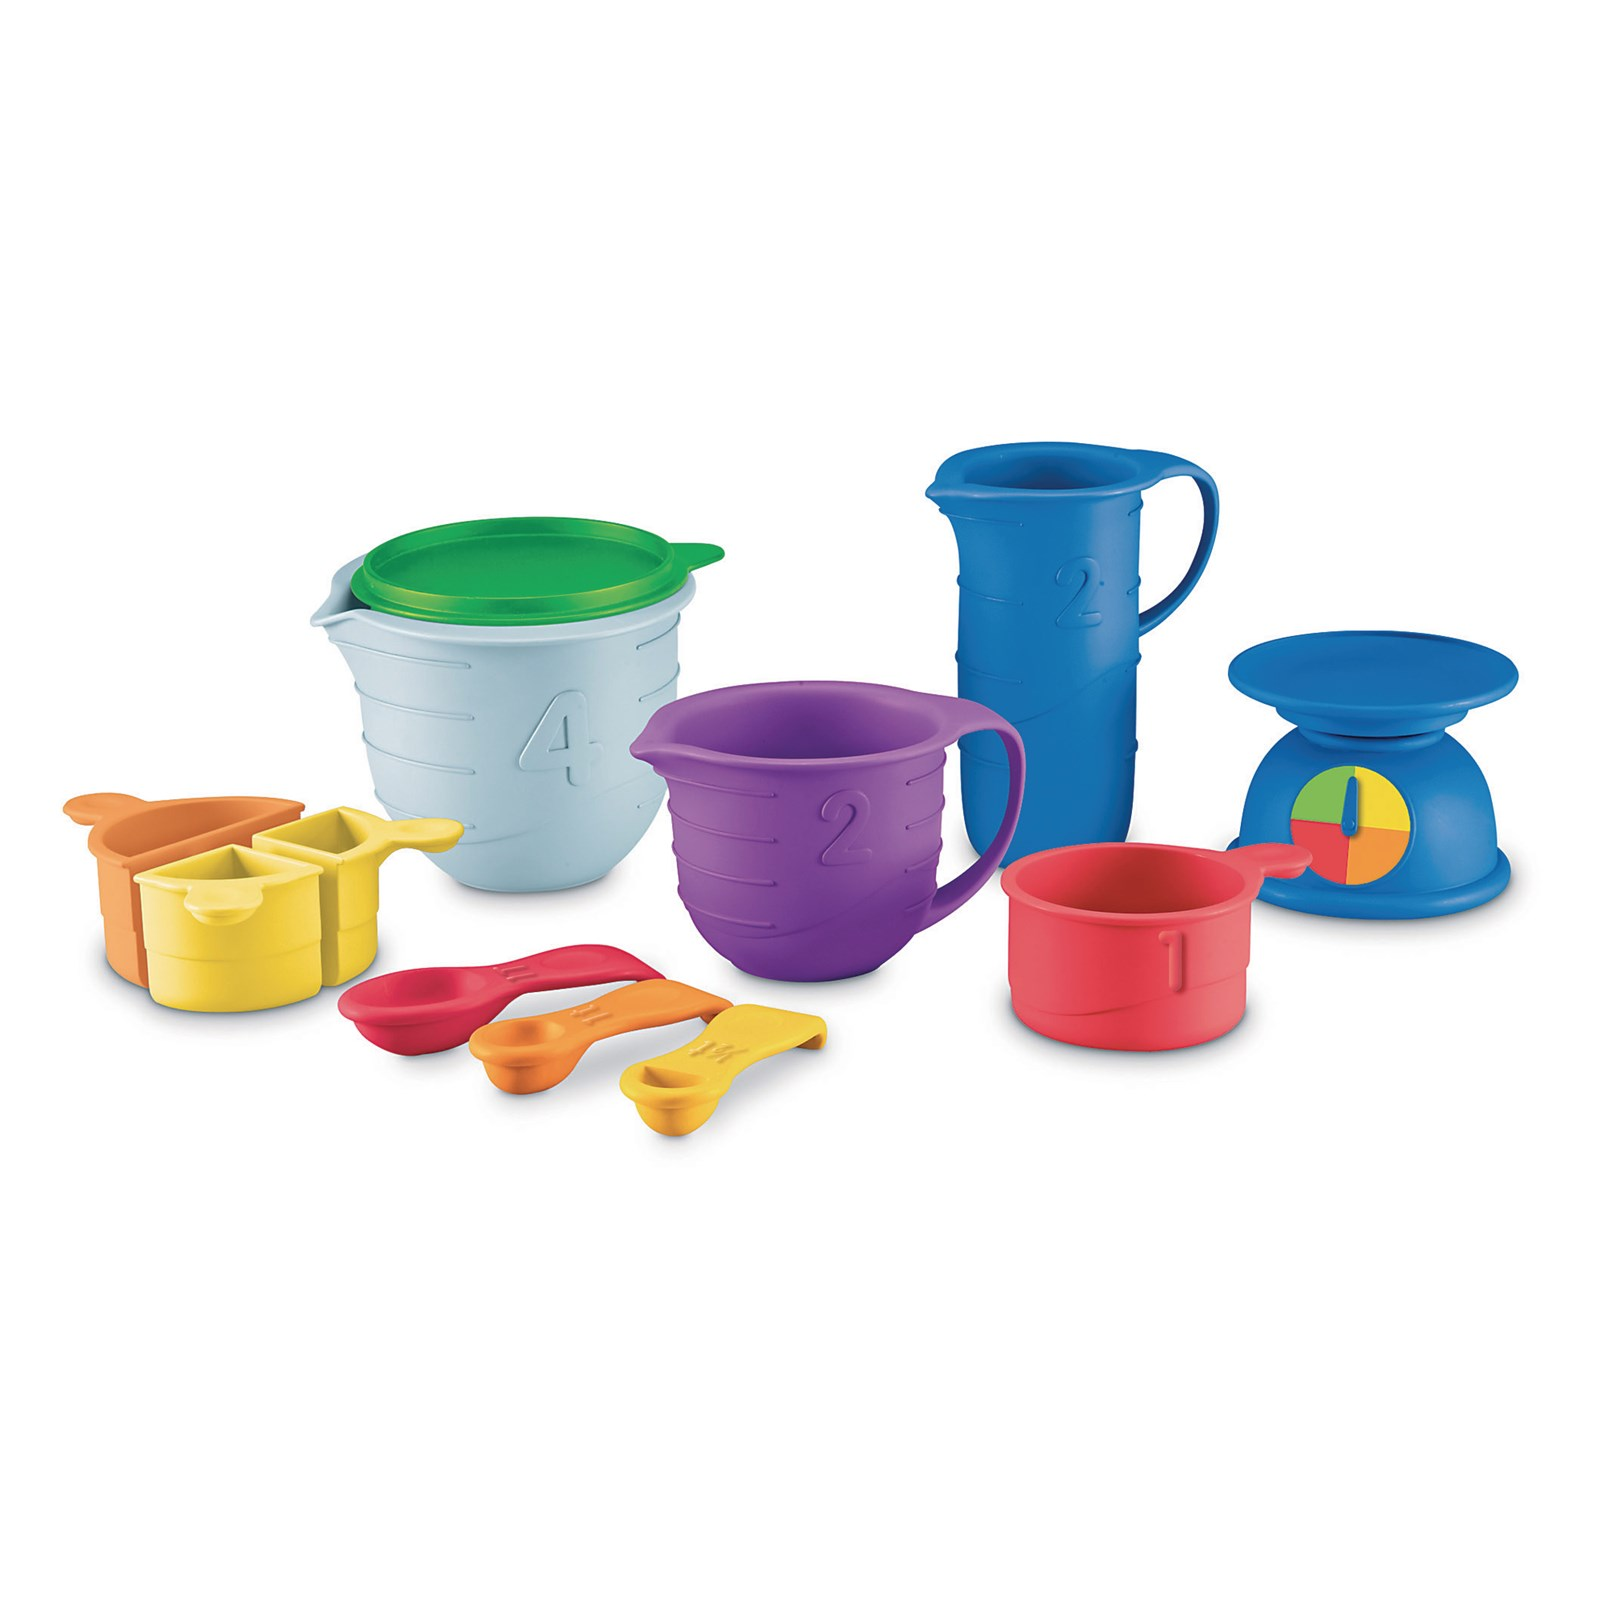 Mix And Measure Set